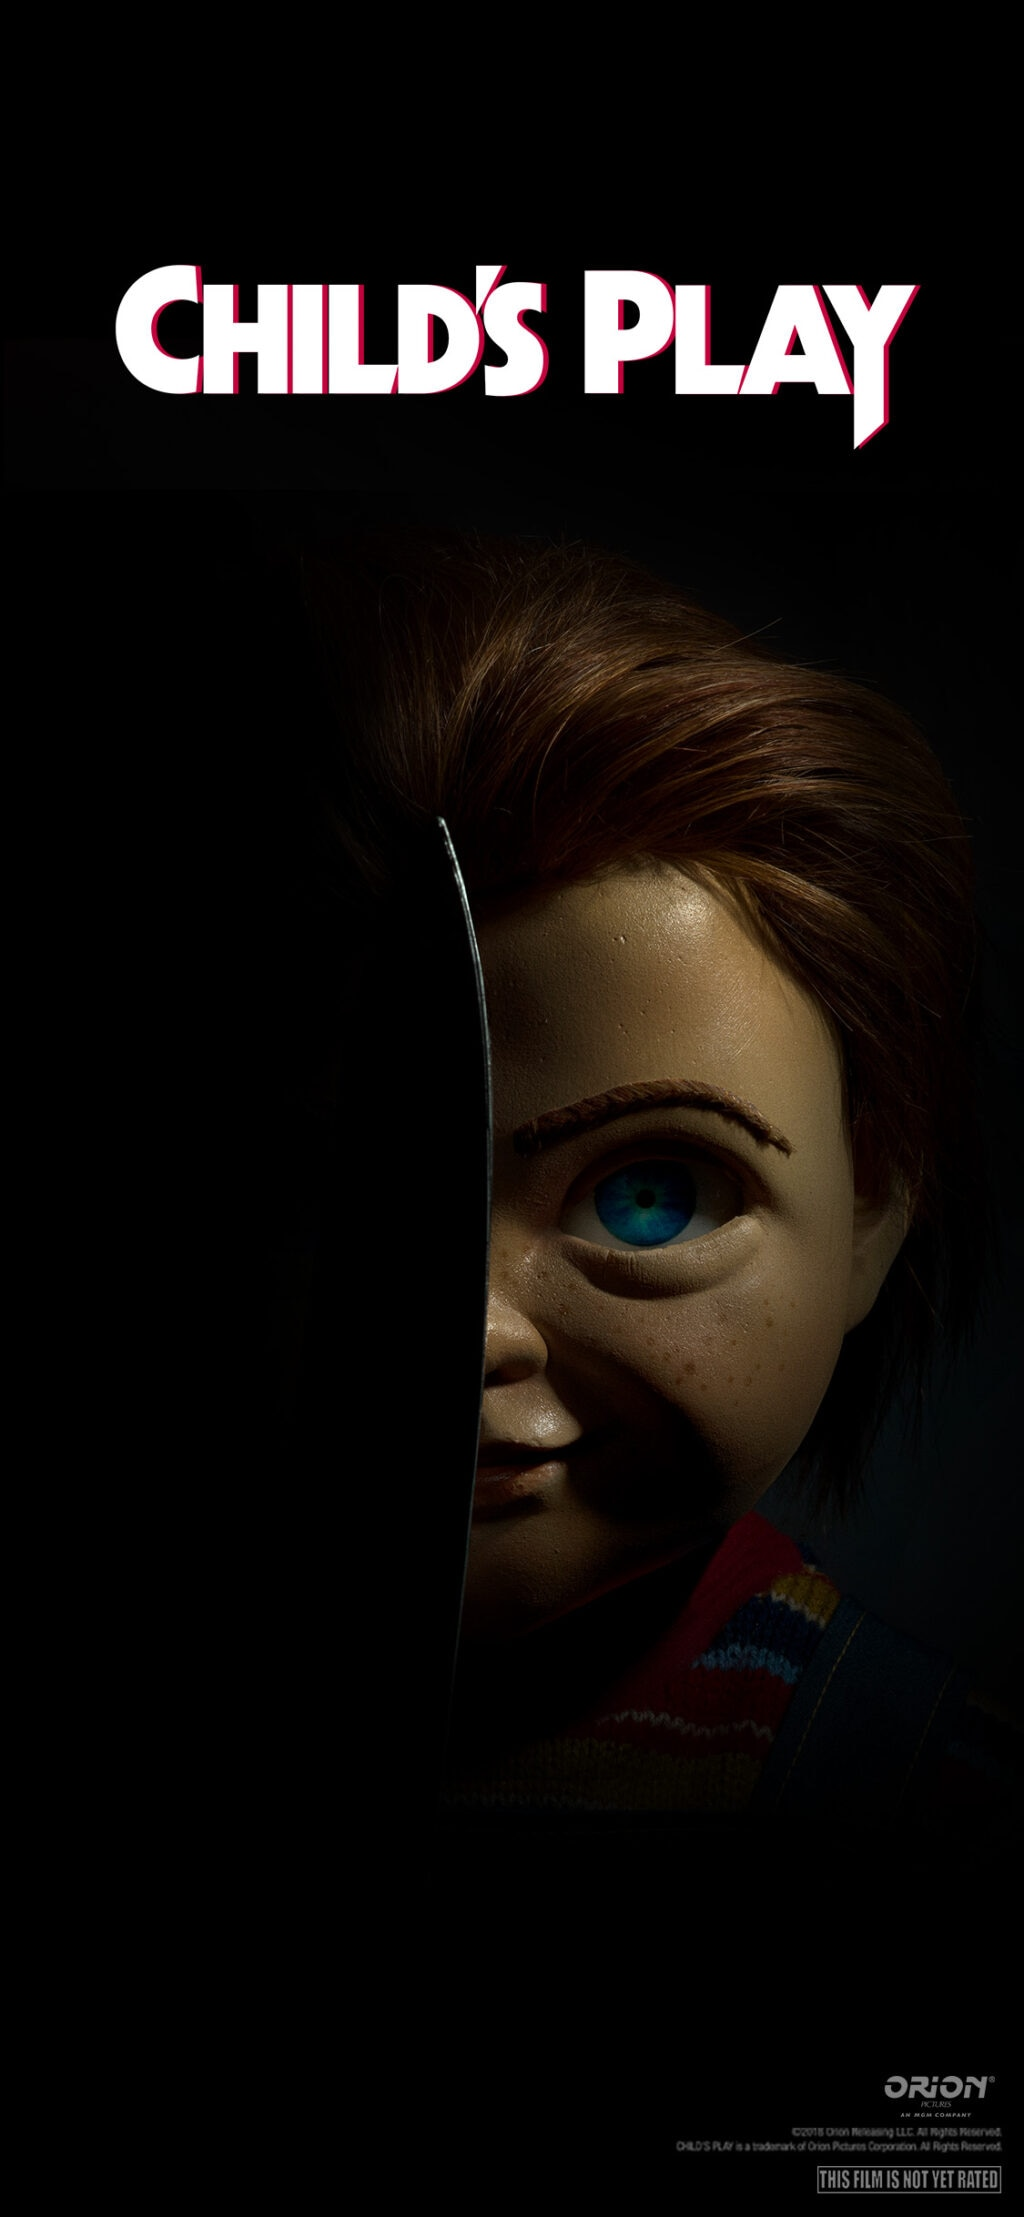 childs play phone background 4 1024x2217 - CHILD'S PLAY Viral Marketing Begins With Website and Mobile Wallpapers